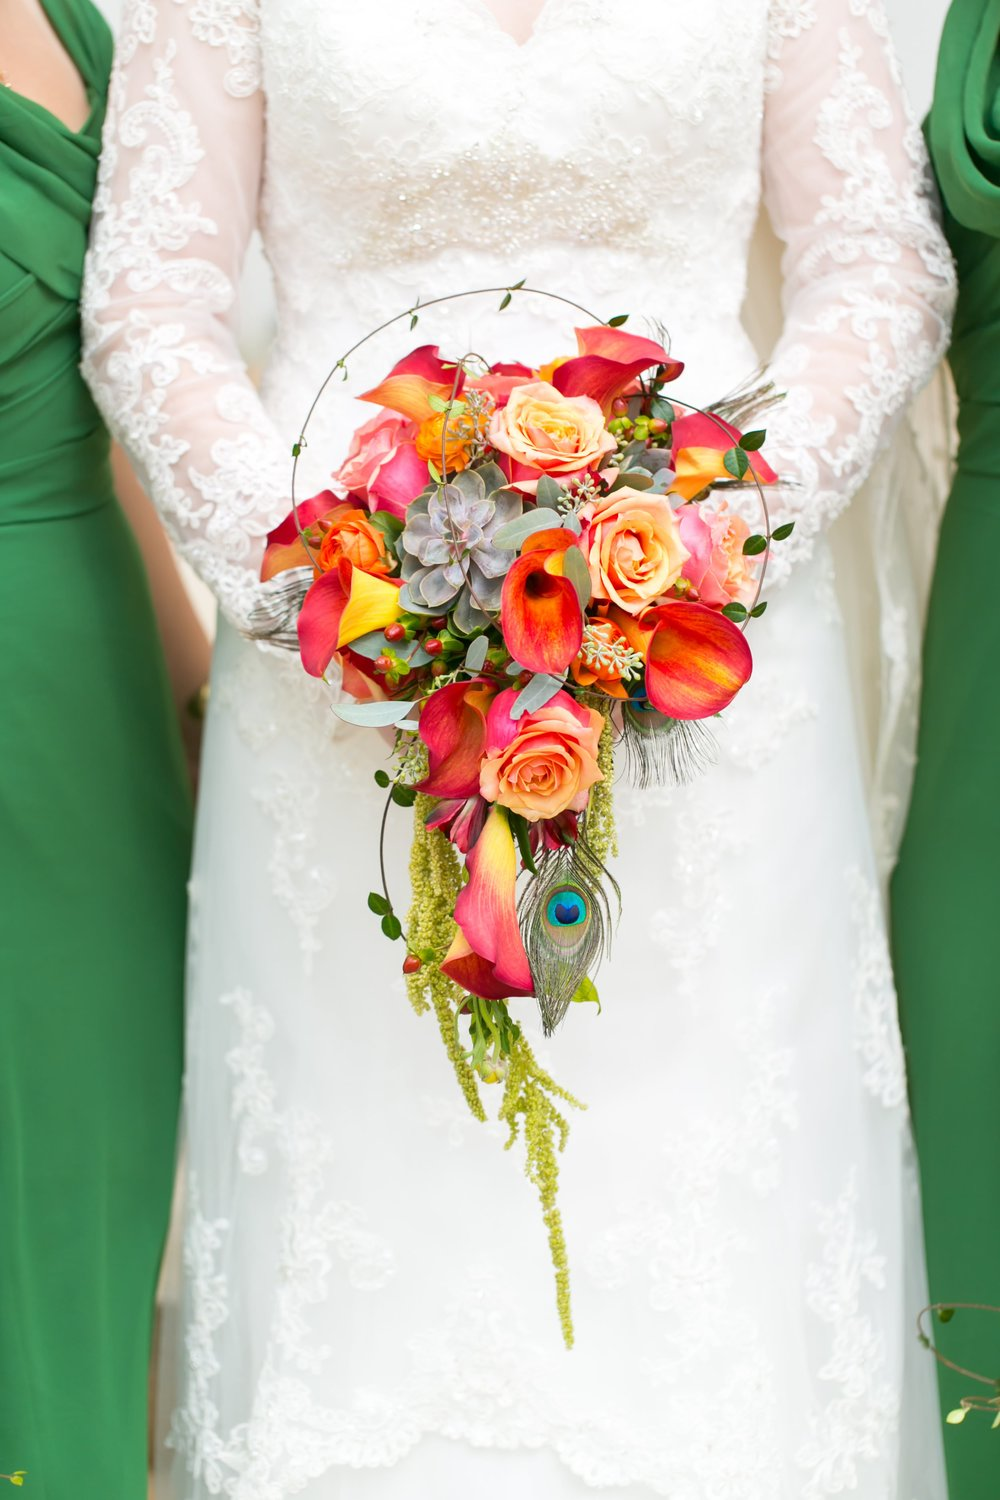 Fall inspired bridal bouquet by  Atlanta wedding florist Laurens Florals . To view more from Zach and Brittany's  elegant fall wedding at Wieuca Road Baptist Church, click here .